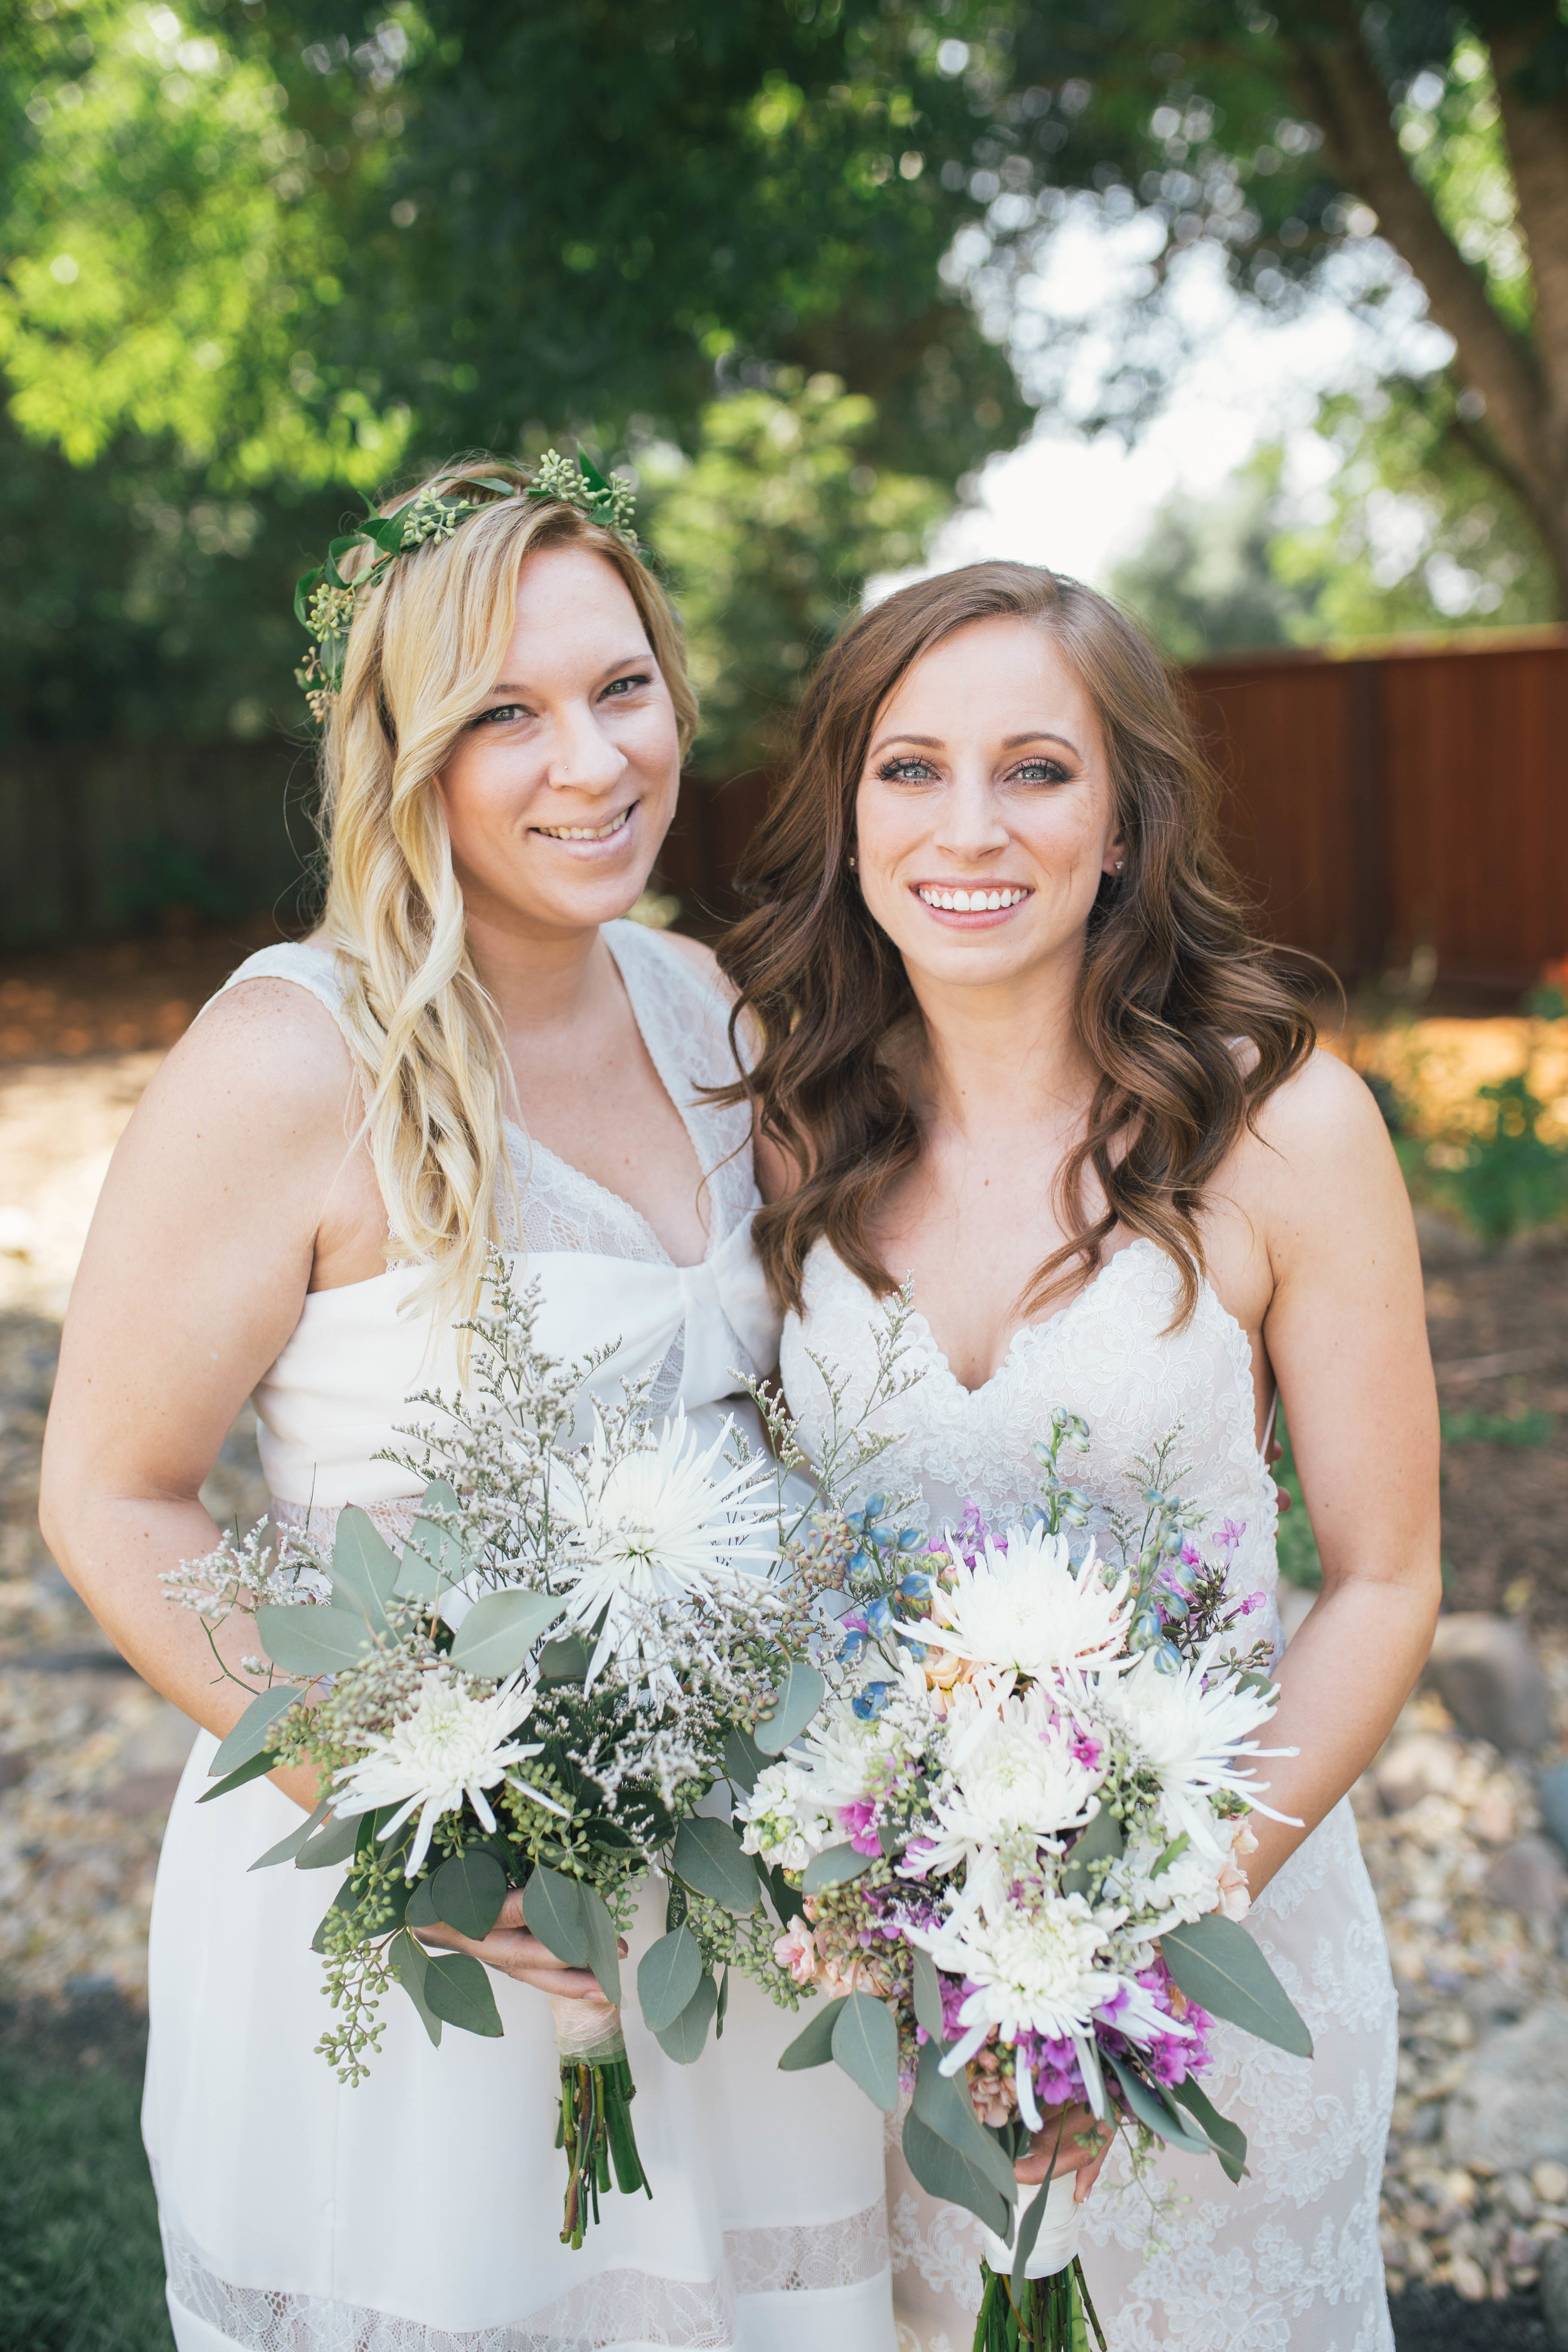 sonoma-county-wedding-photographer-backyard-bride-bridesmaids-flower-crown